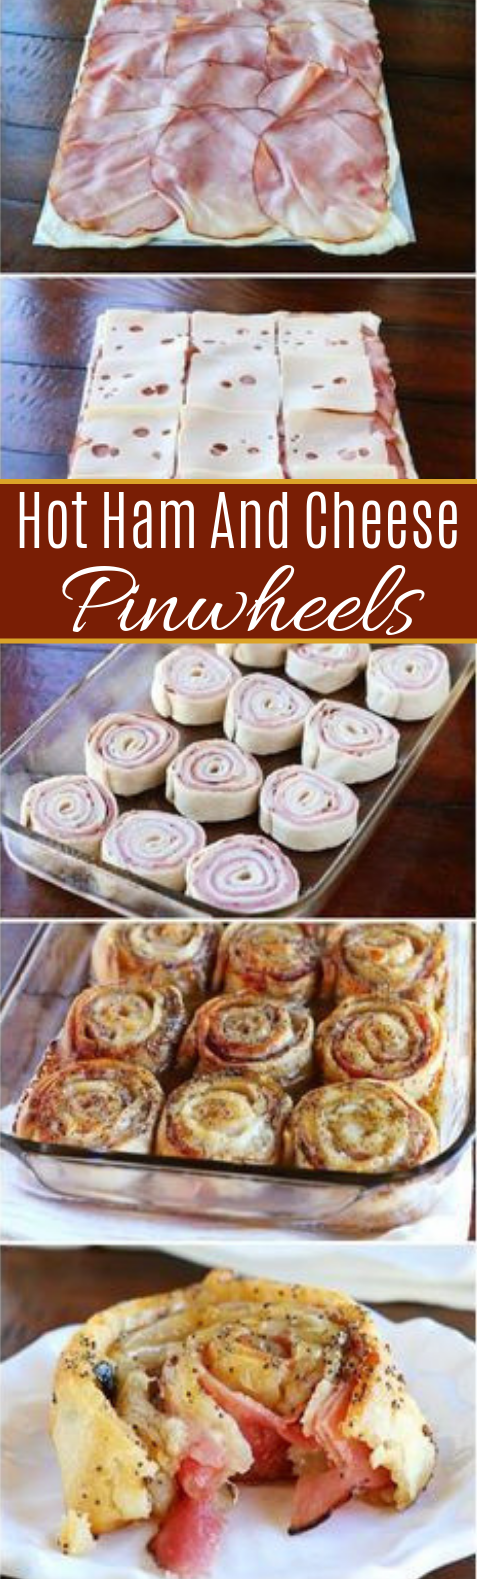 Hot Ham And Cheese Pinwheels #dinner #partyfood